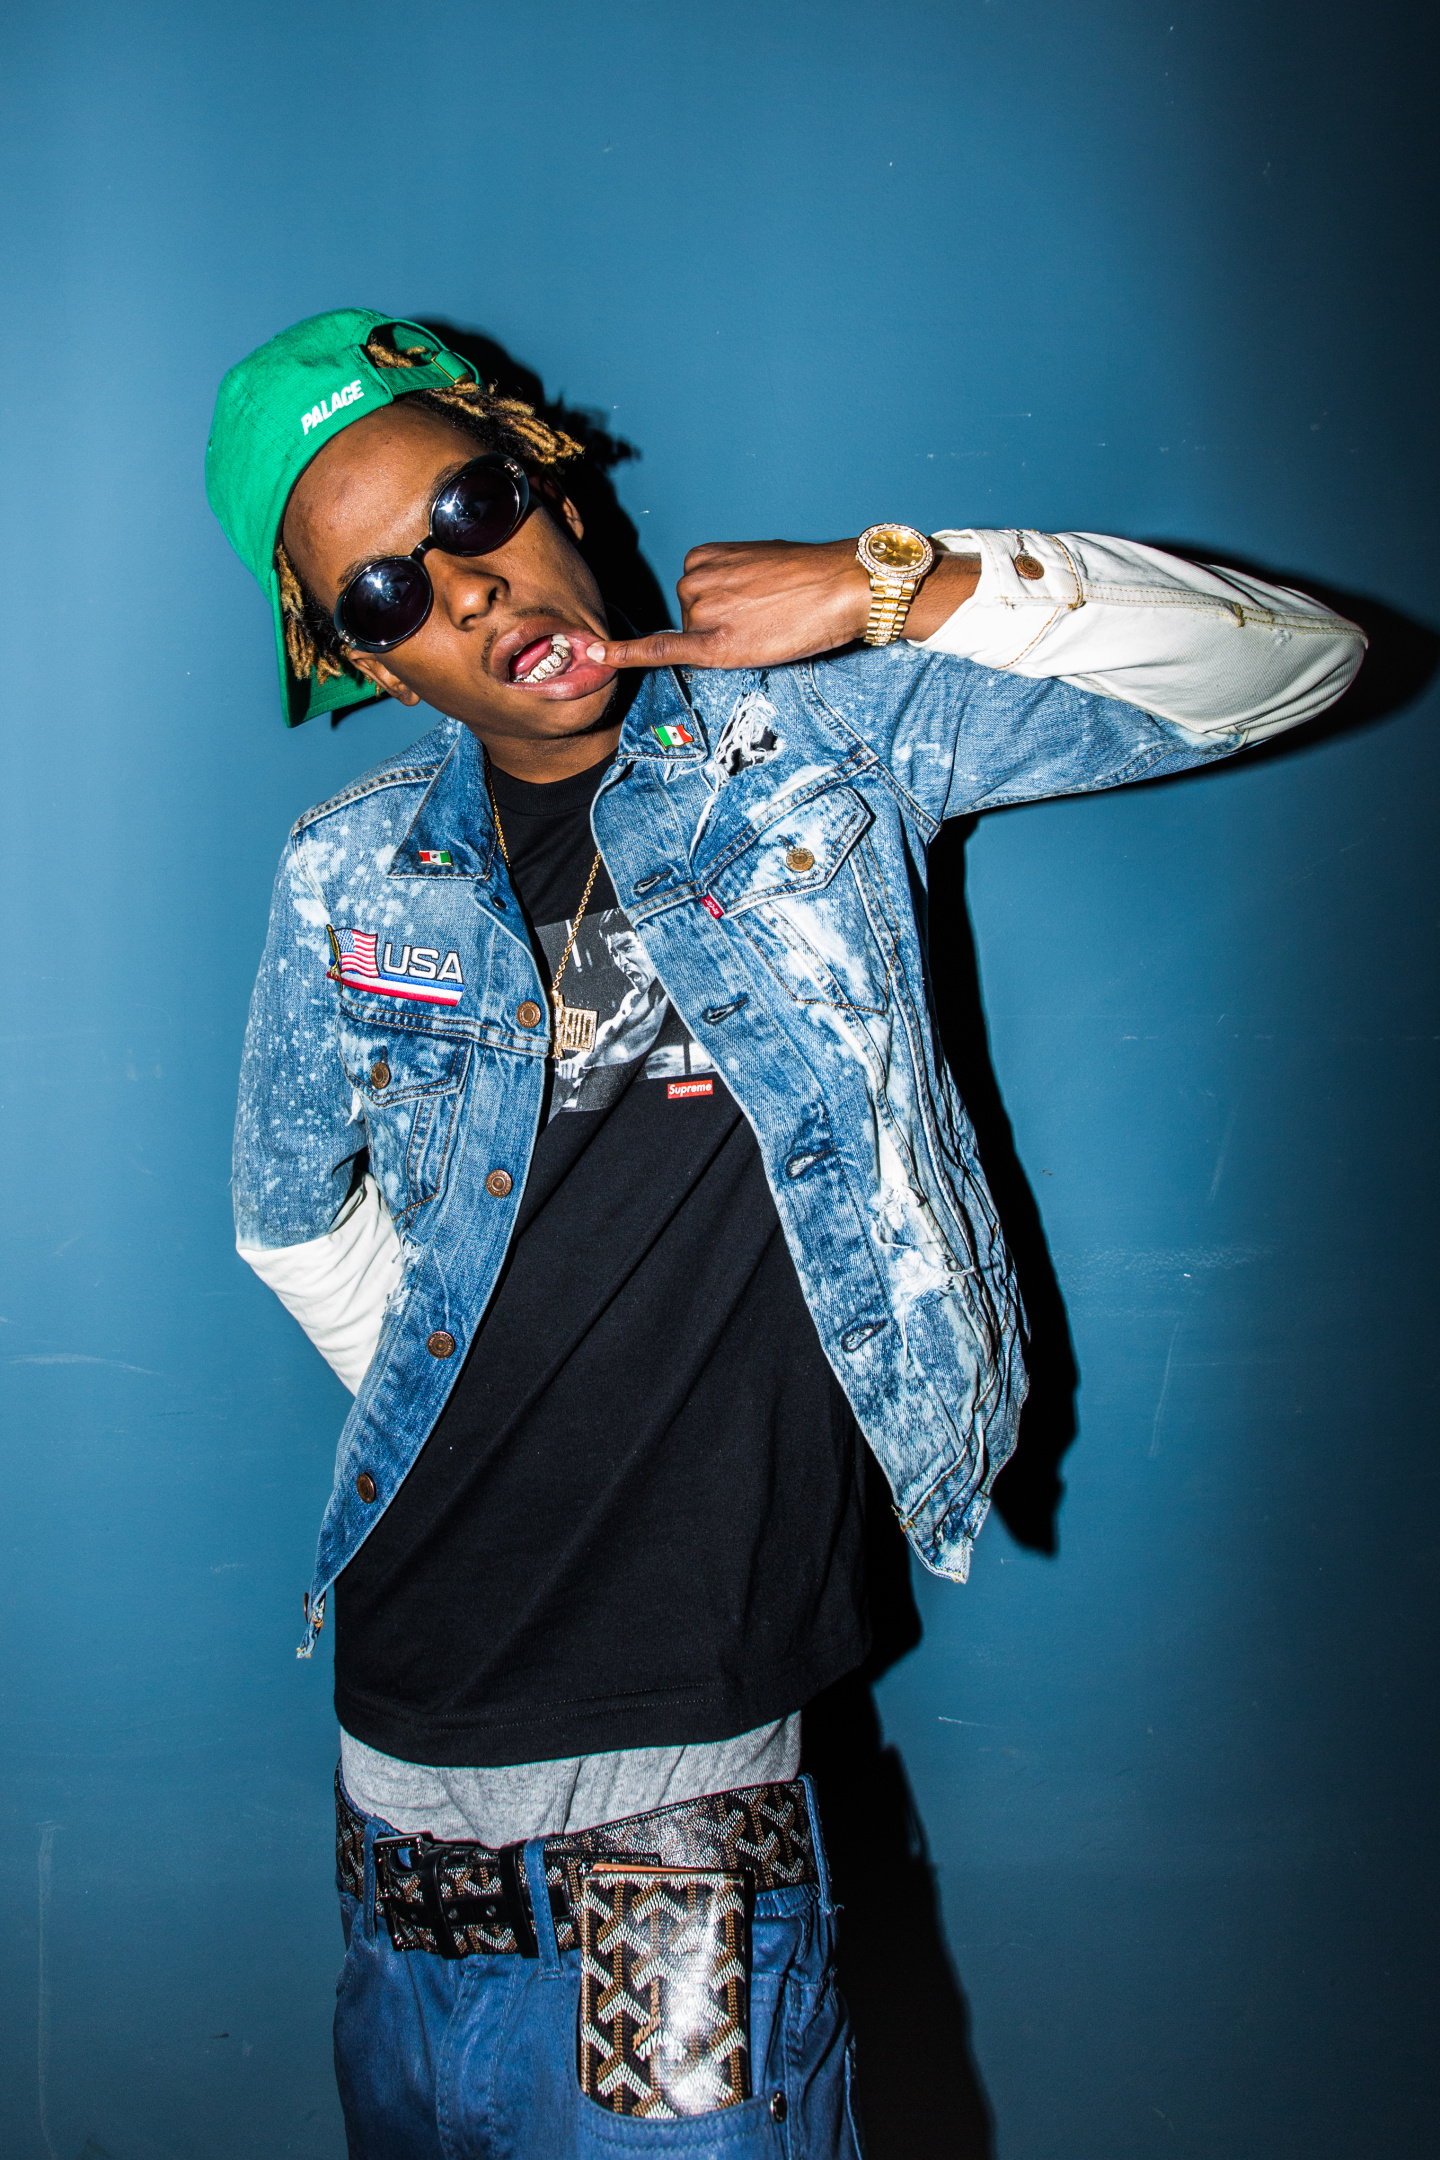 The Things I Carry Rich The Kid The Fader